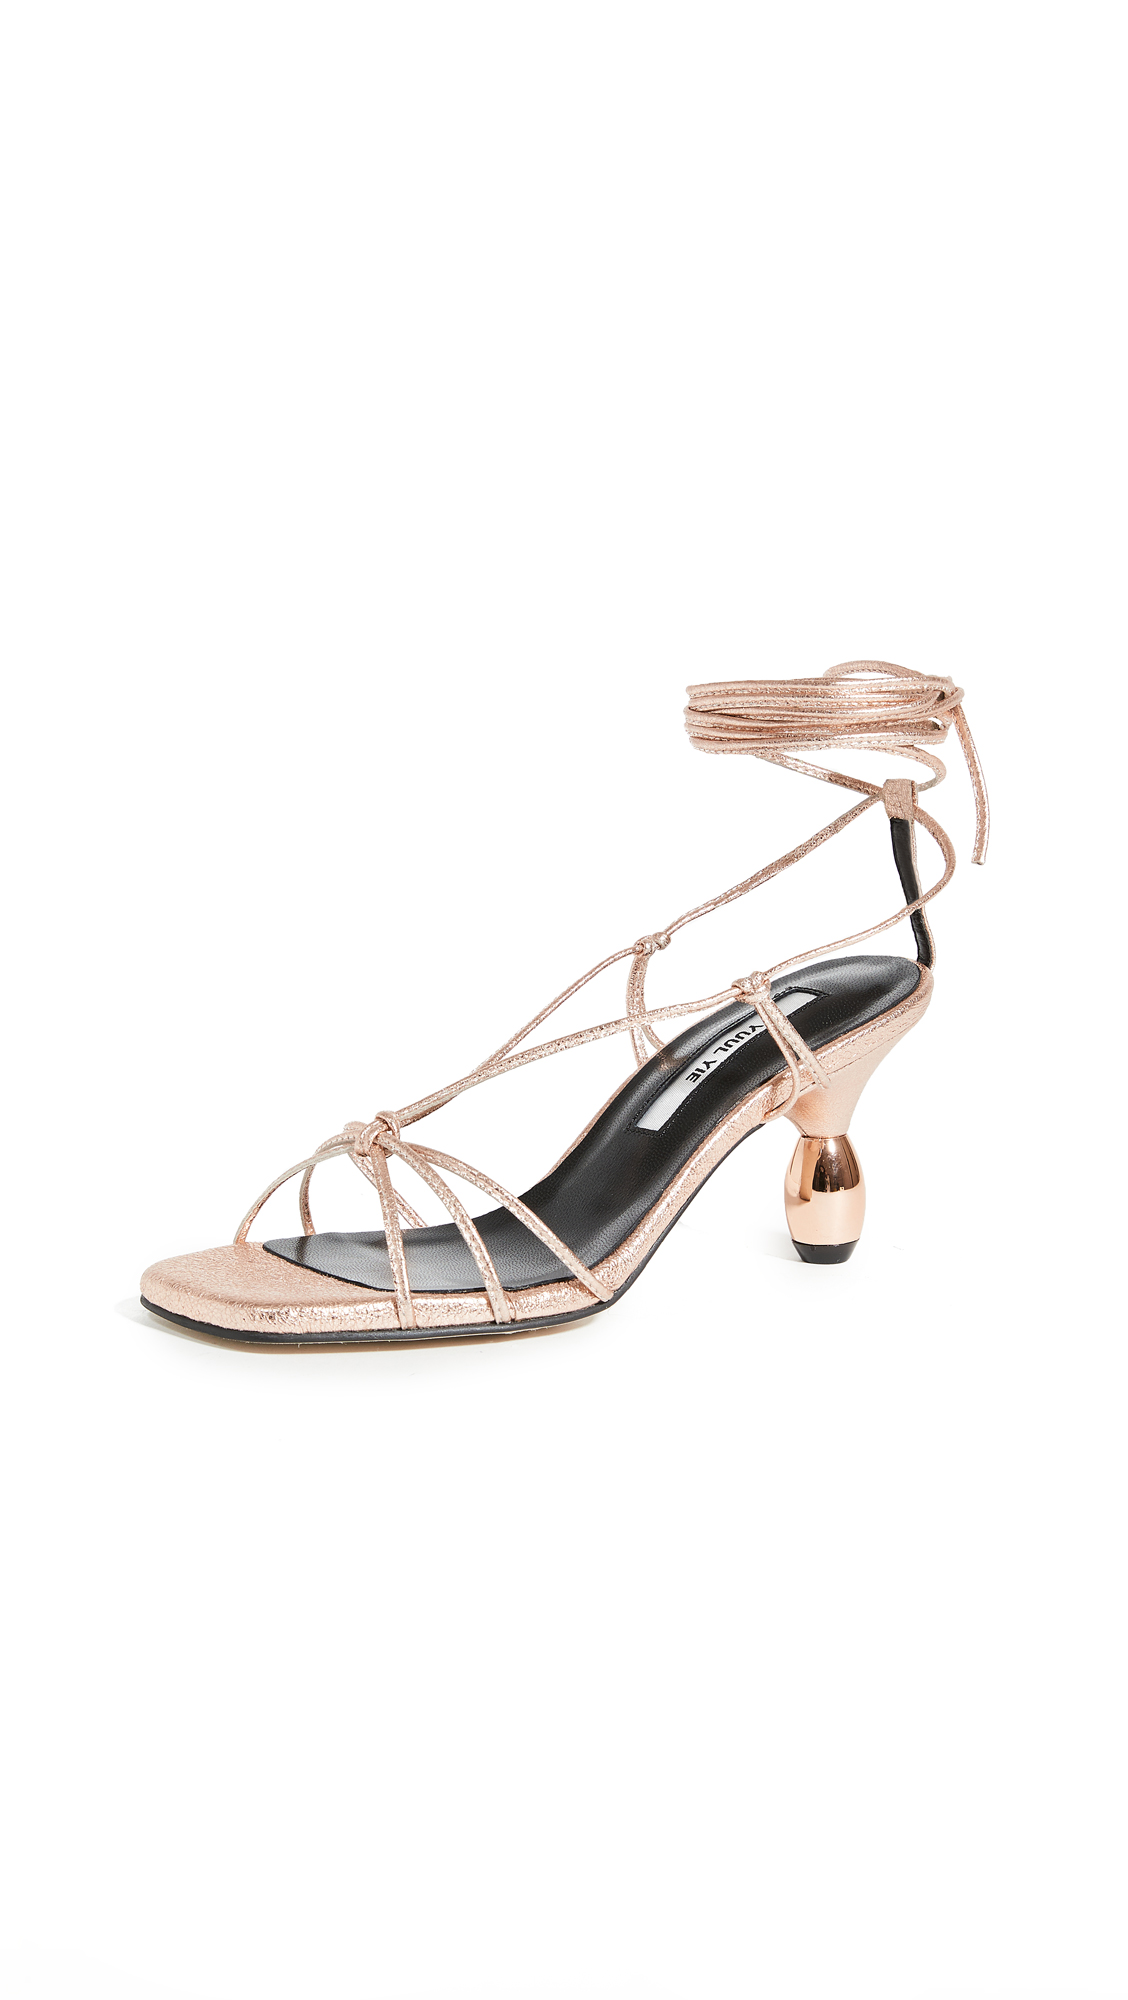 Buy Yuul Yie Crystal Lace Up Sandals online, shop Yuul Yie